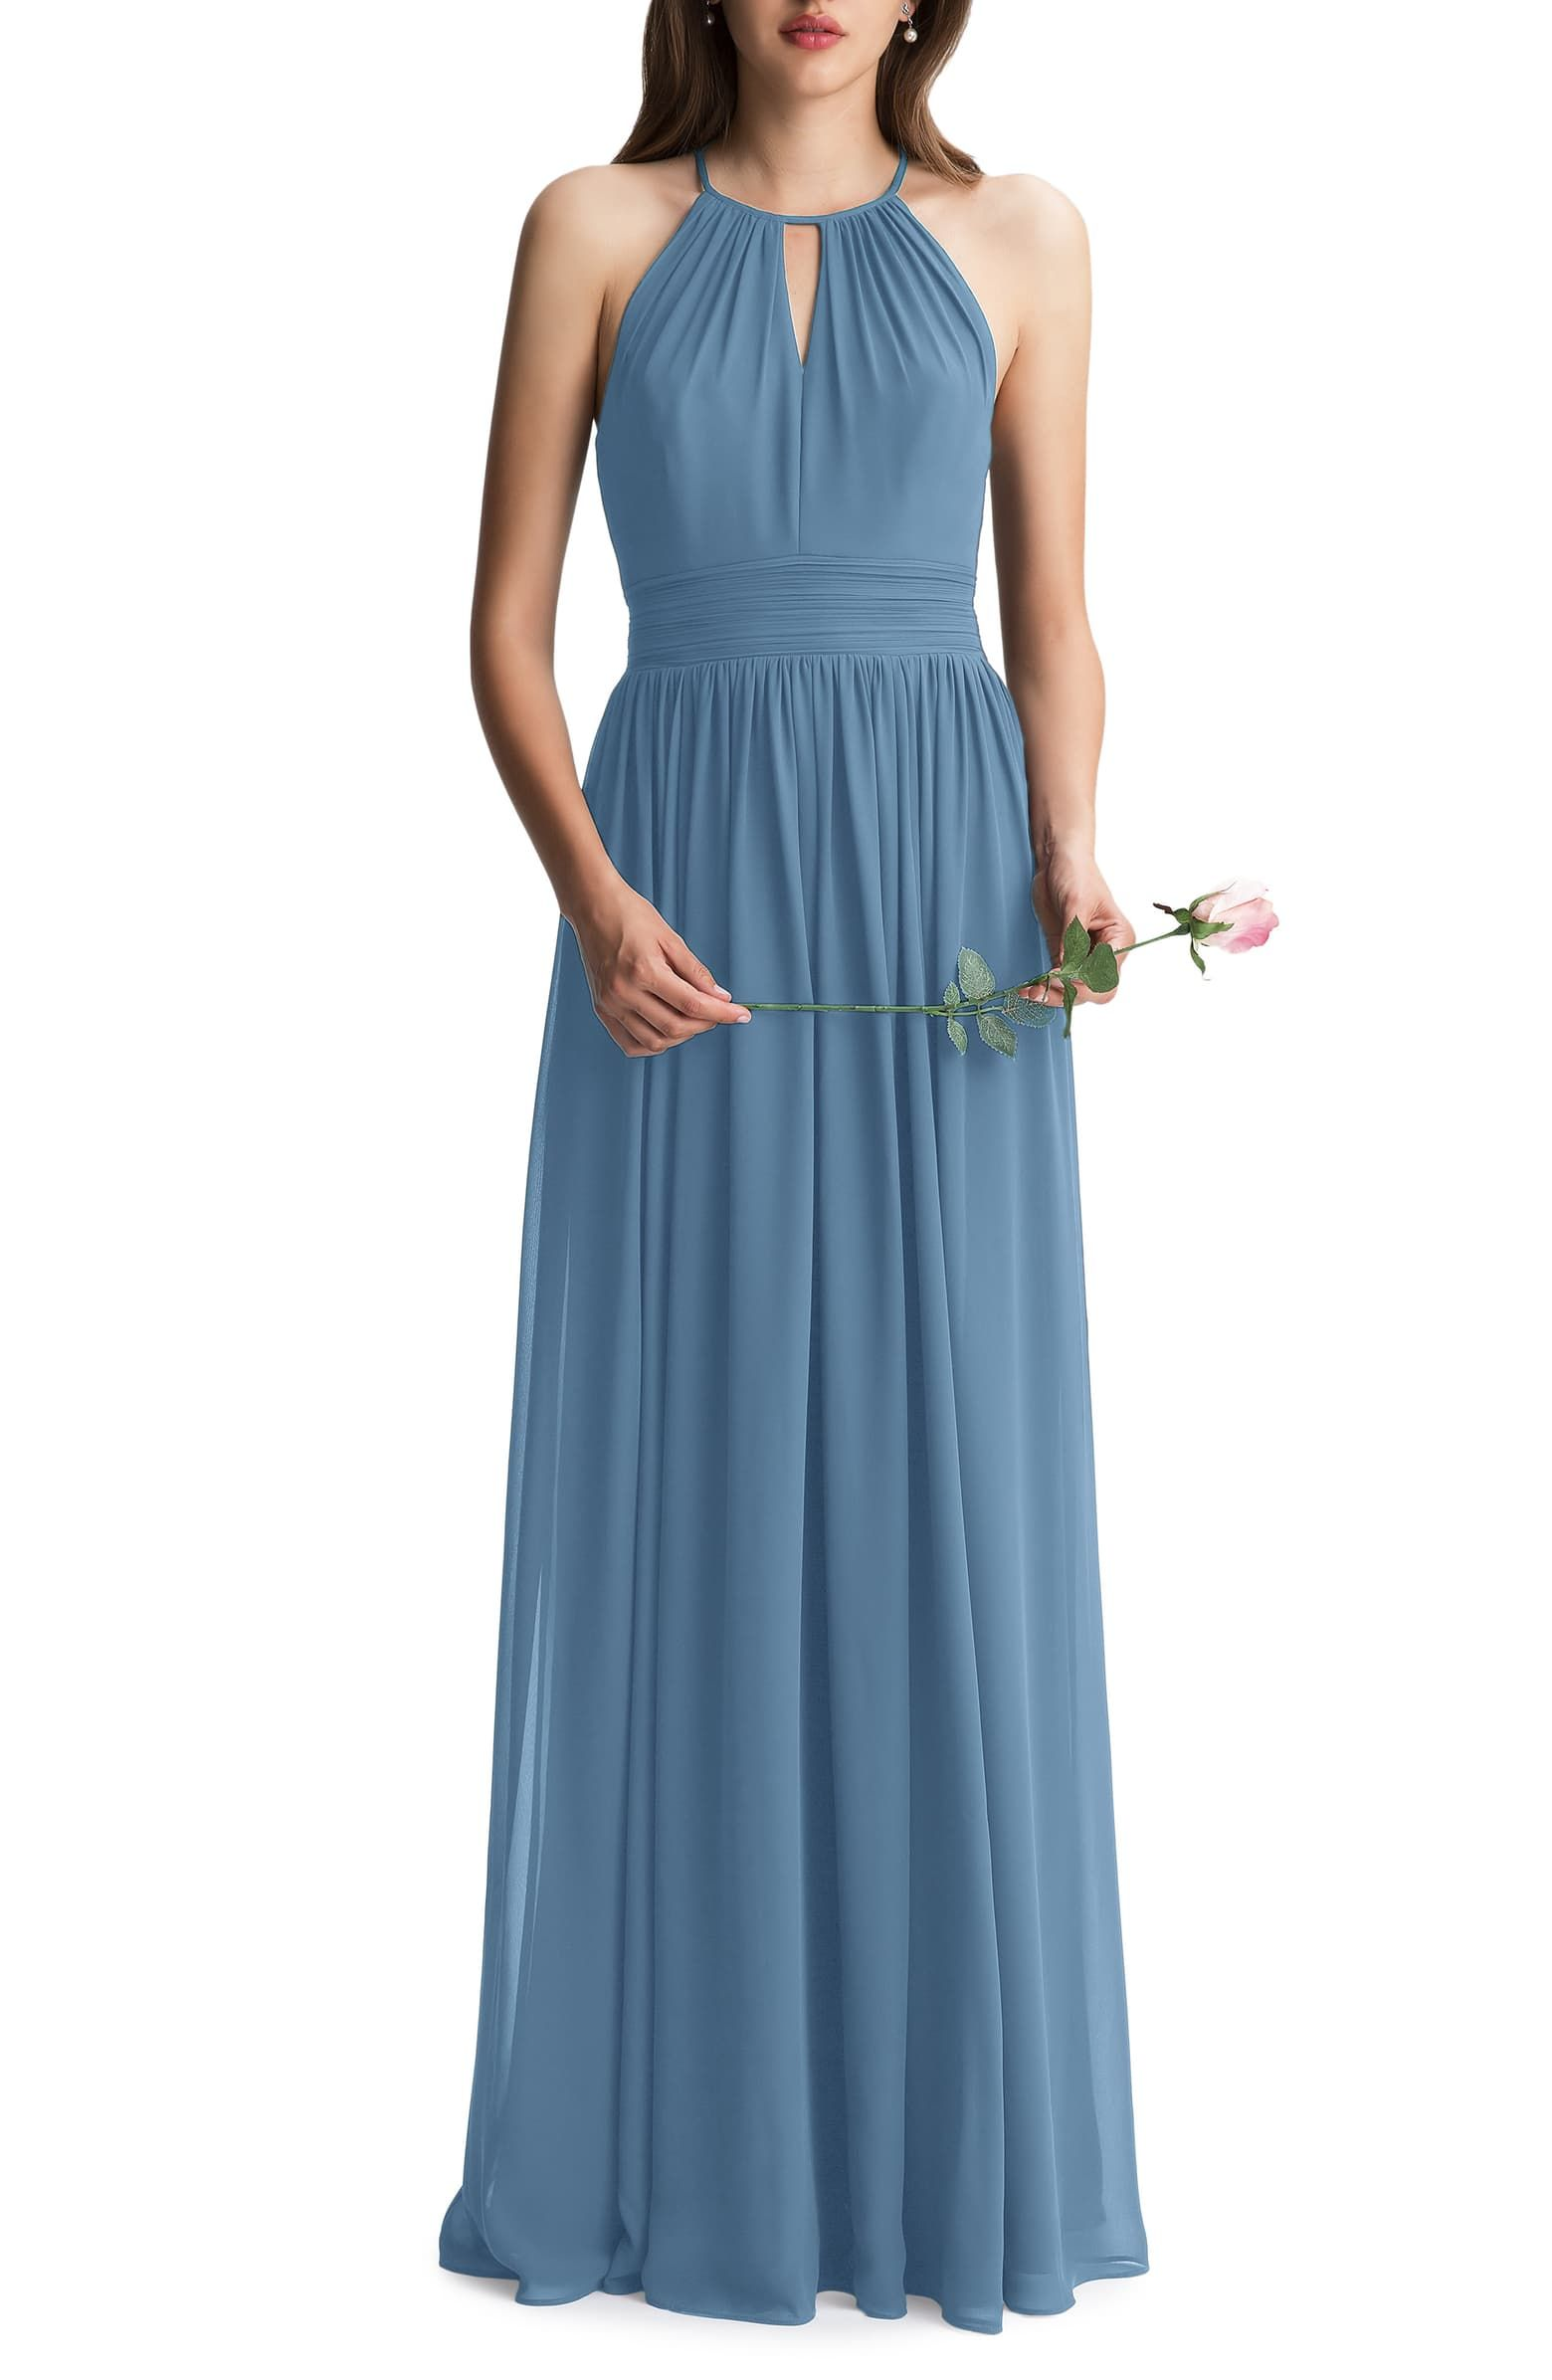 Photo of #Levkoff Keyhole Neck Chiffon A-Line Gown | Nordstrom